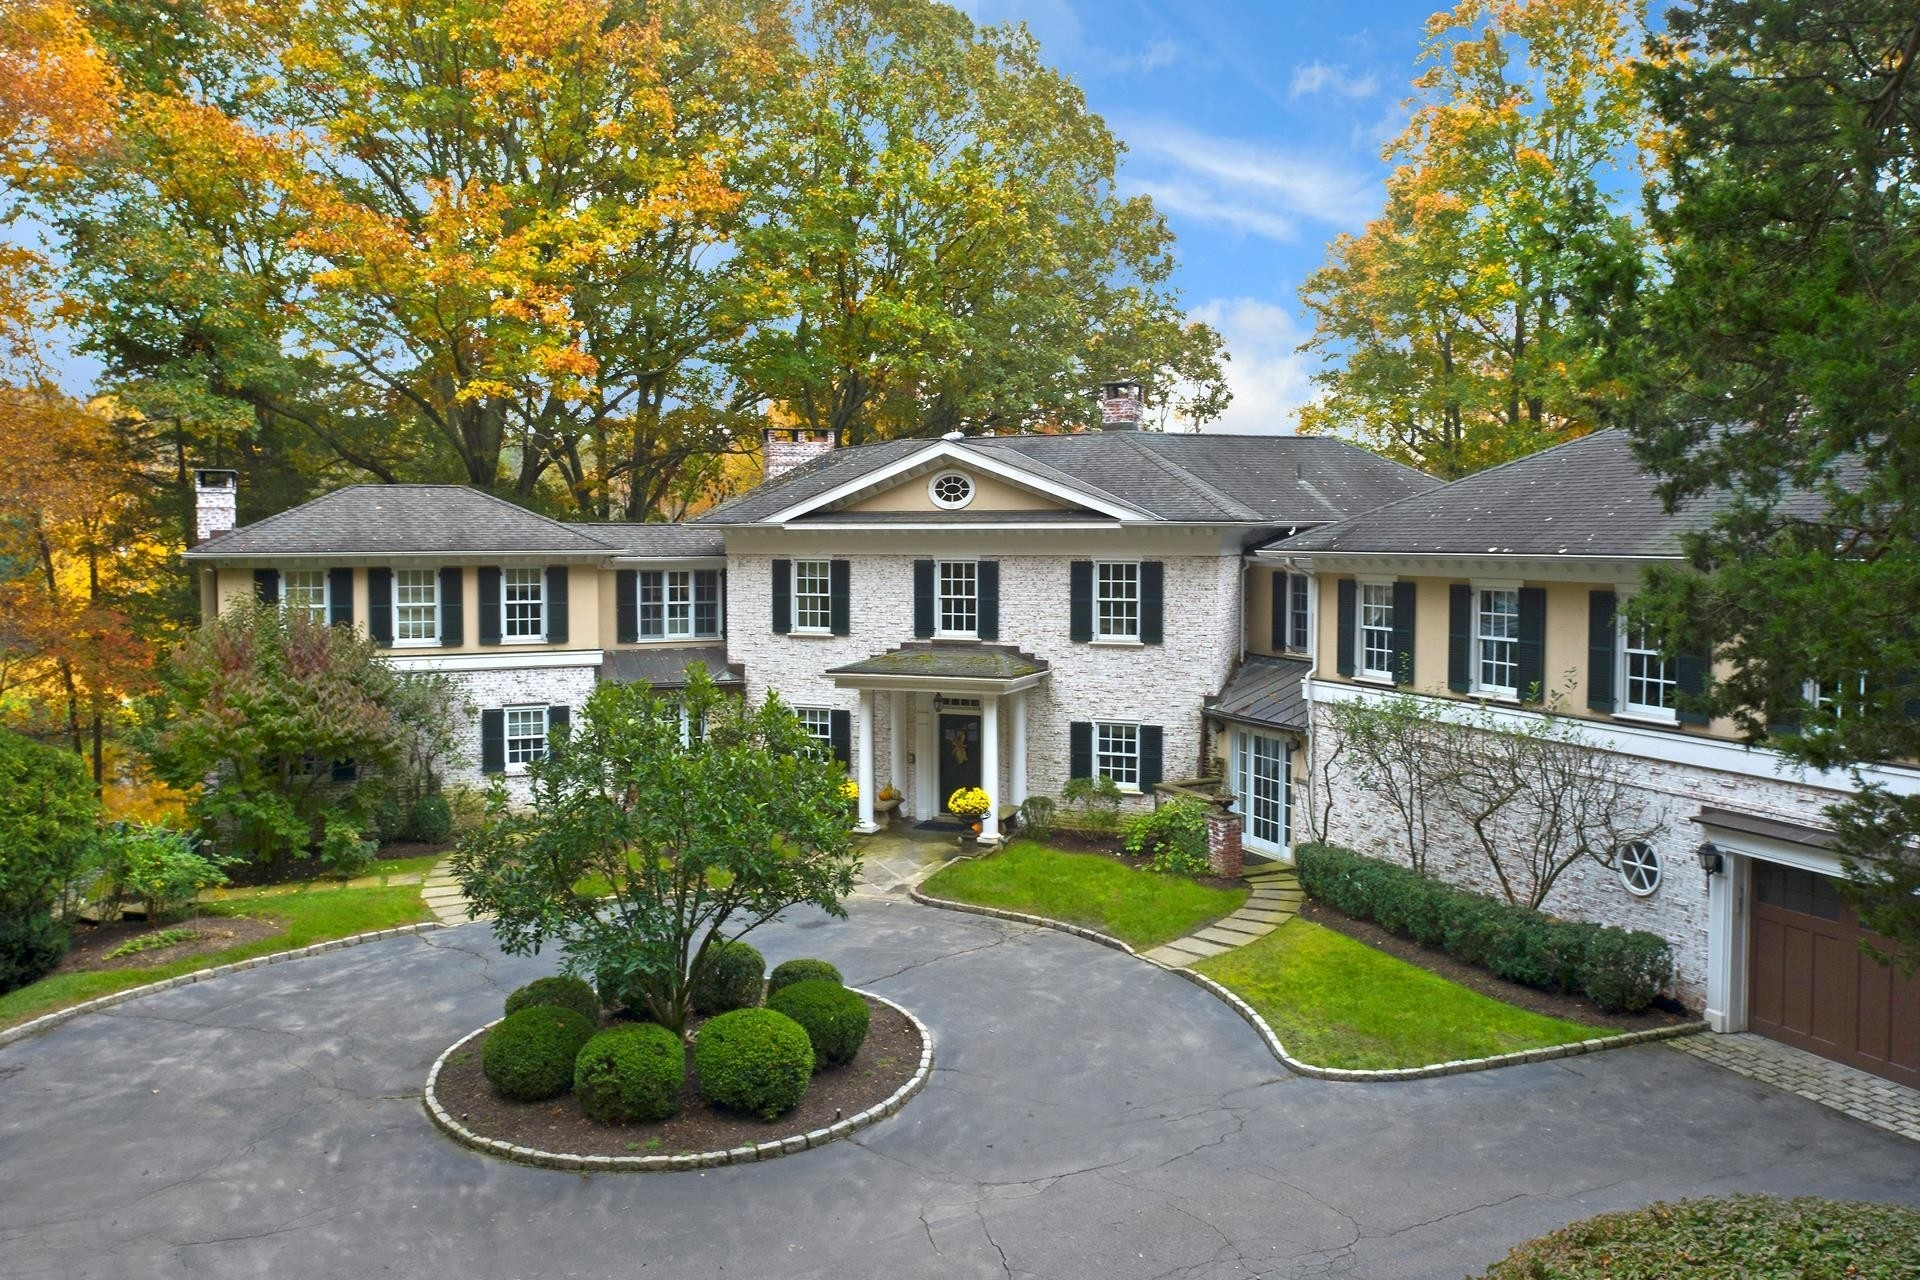 Property à New Canaan, CT 06840